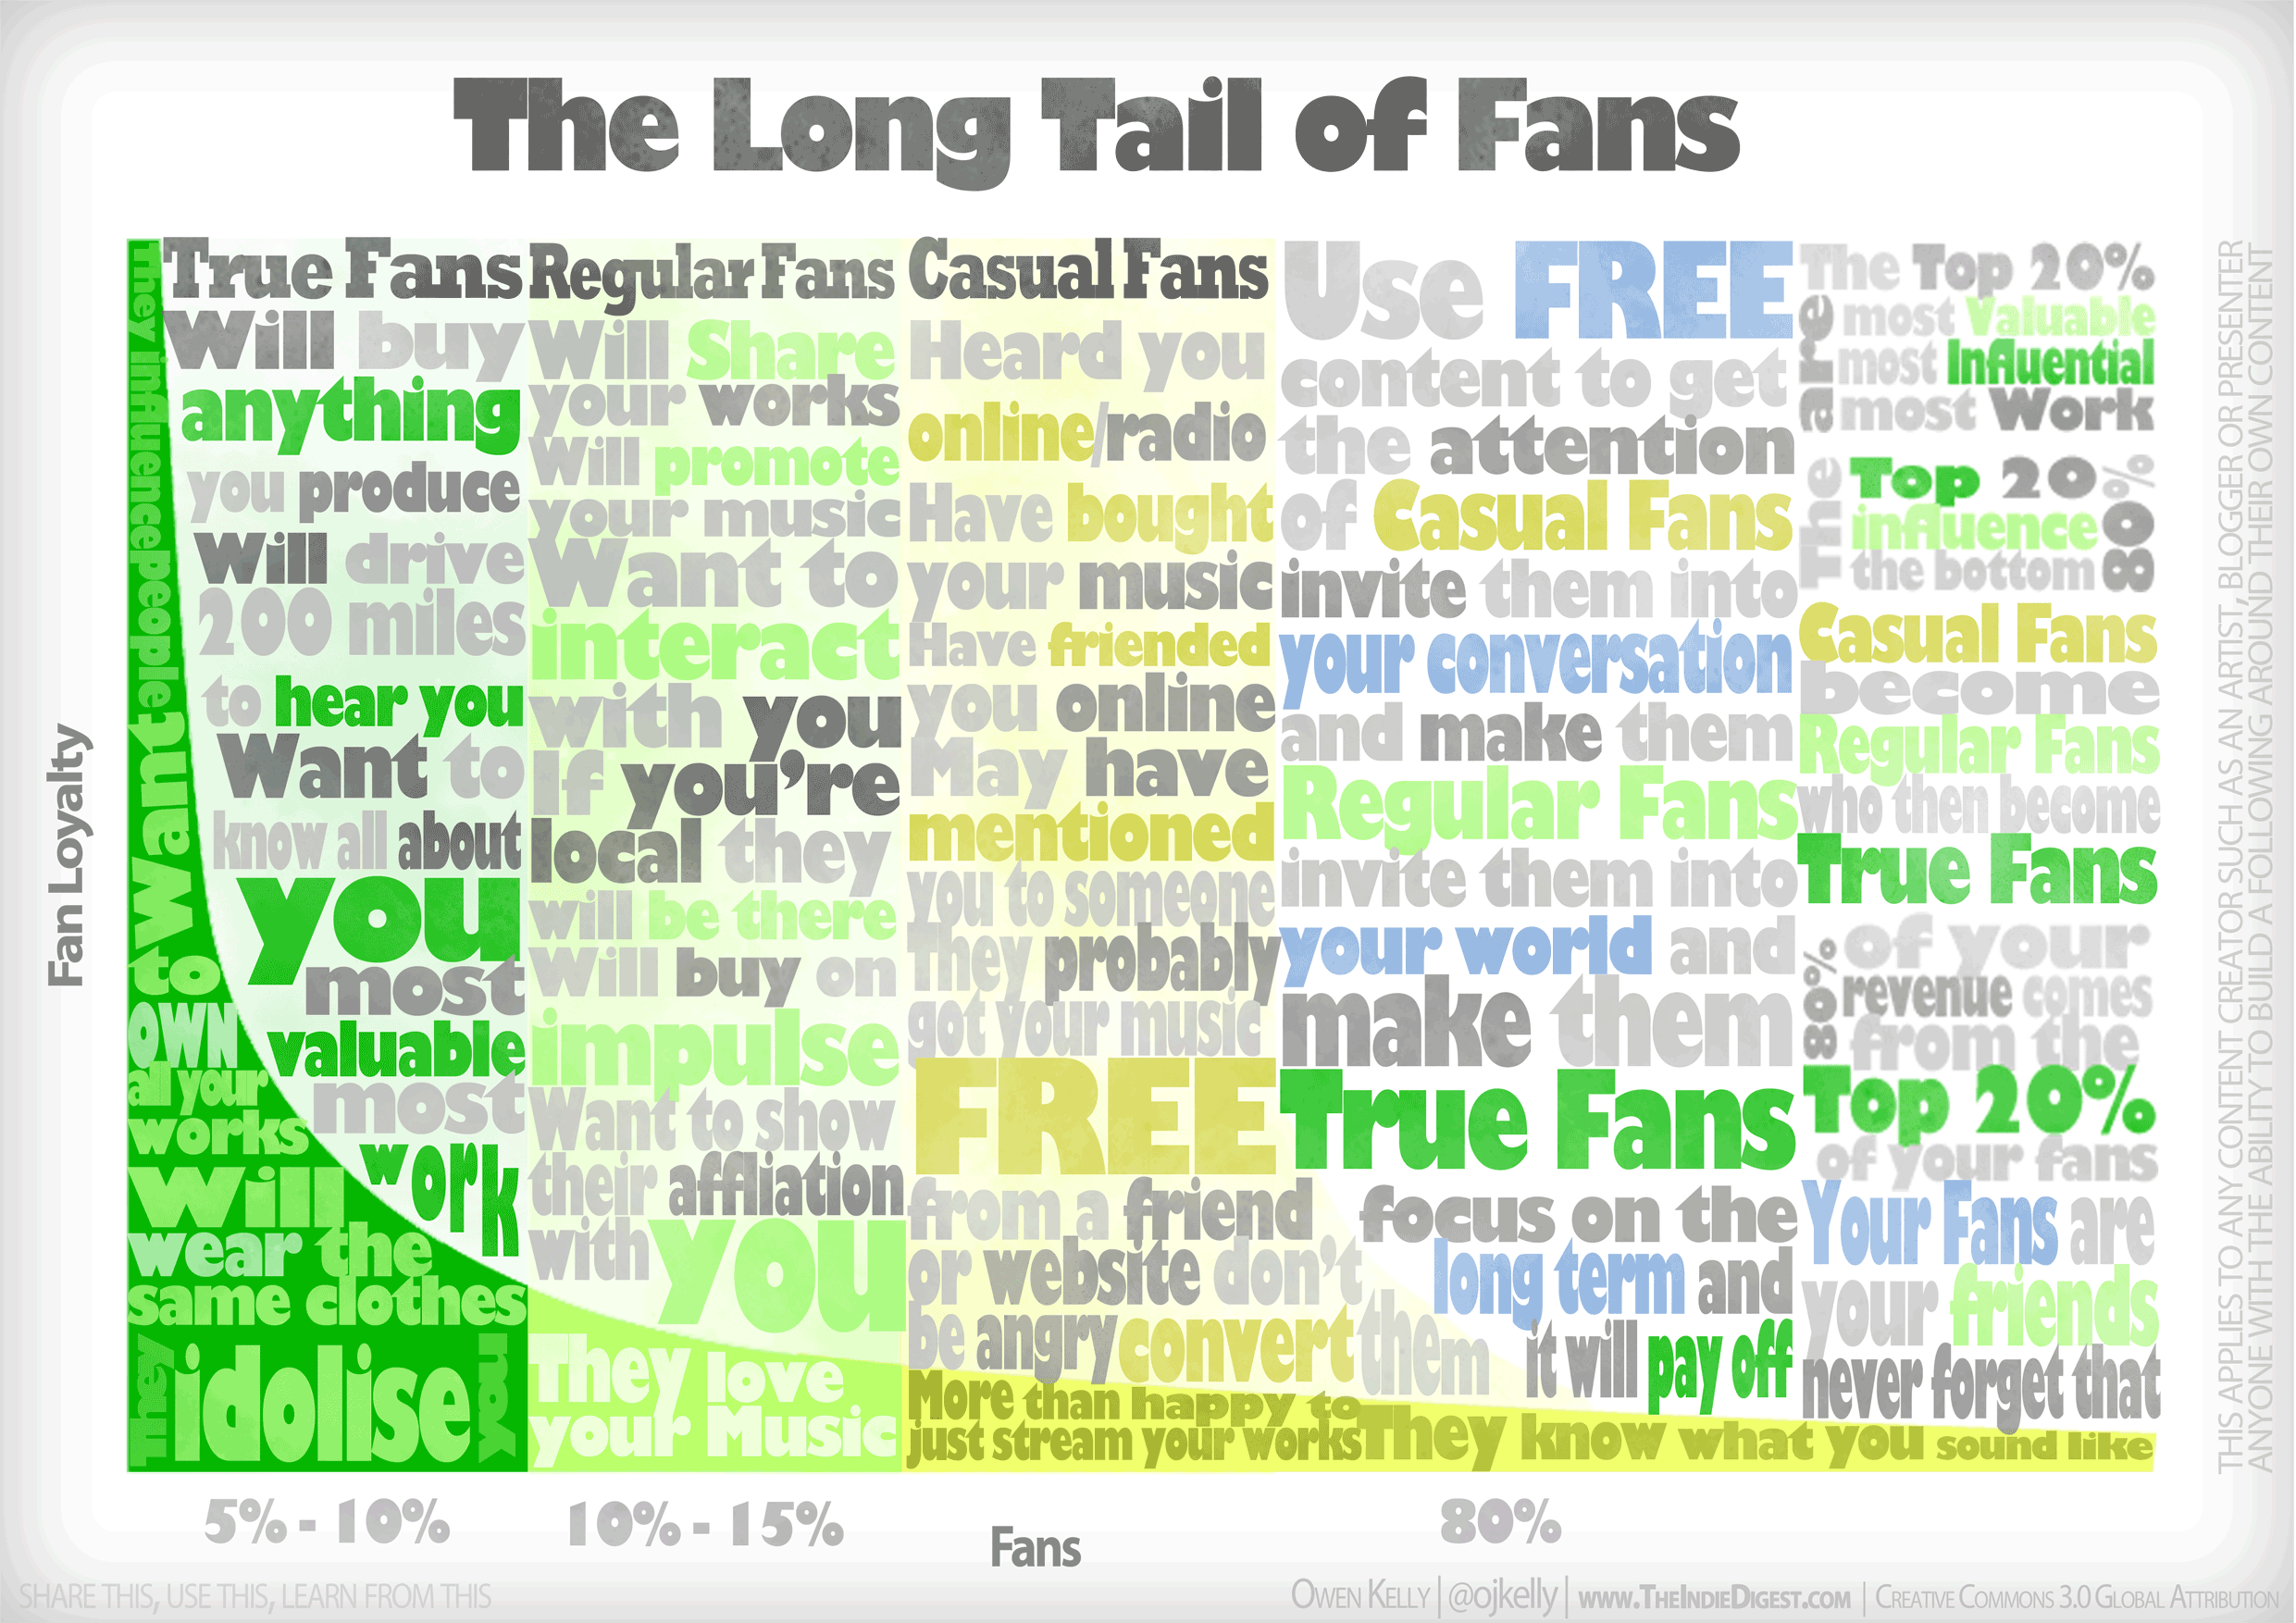 longtail_of_fans_web